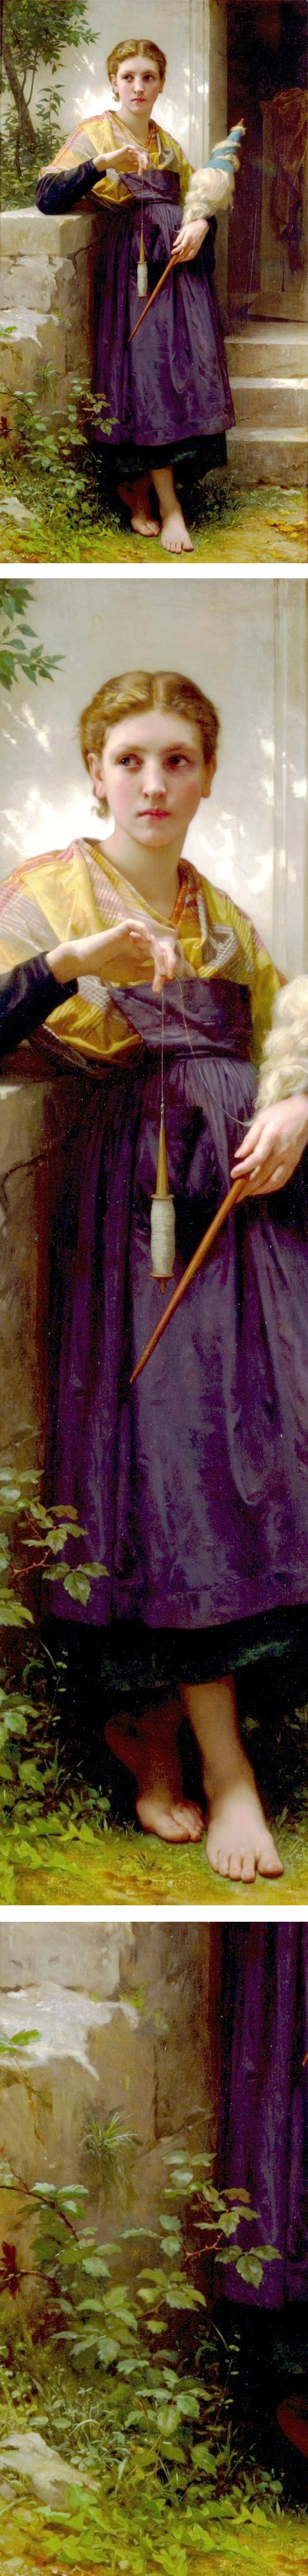 The Spinner, William-Adolphe Bouguereau